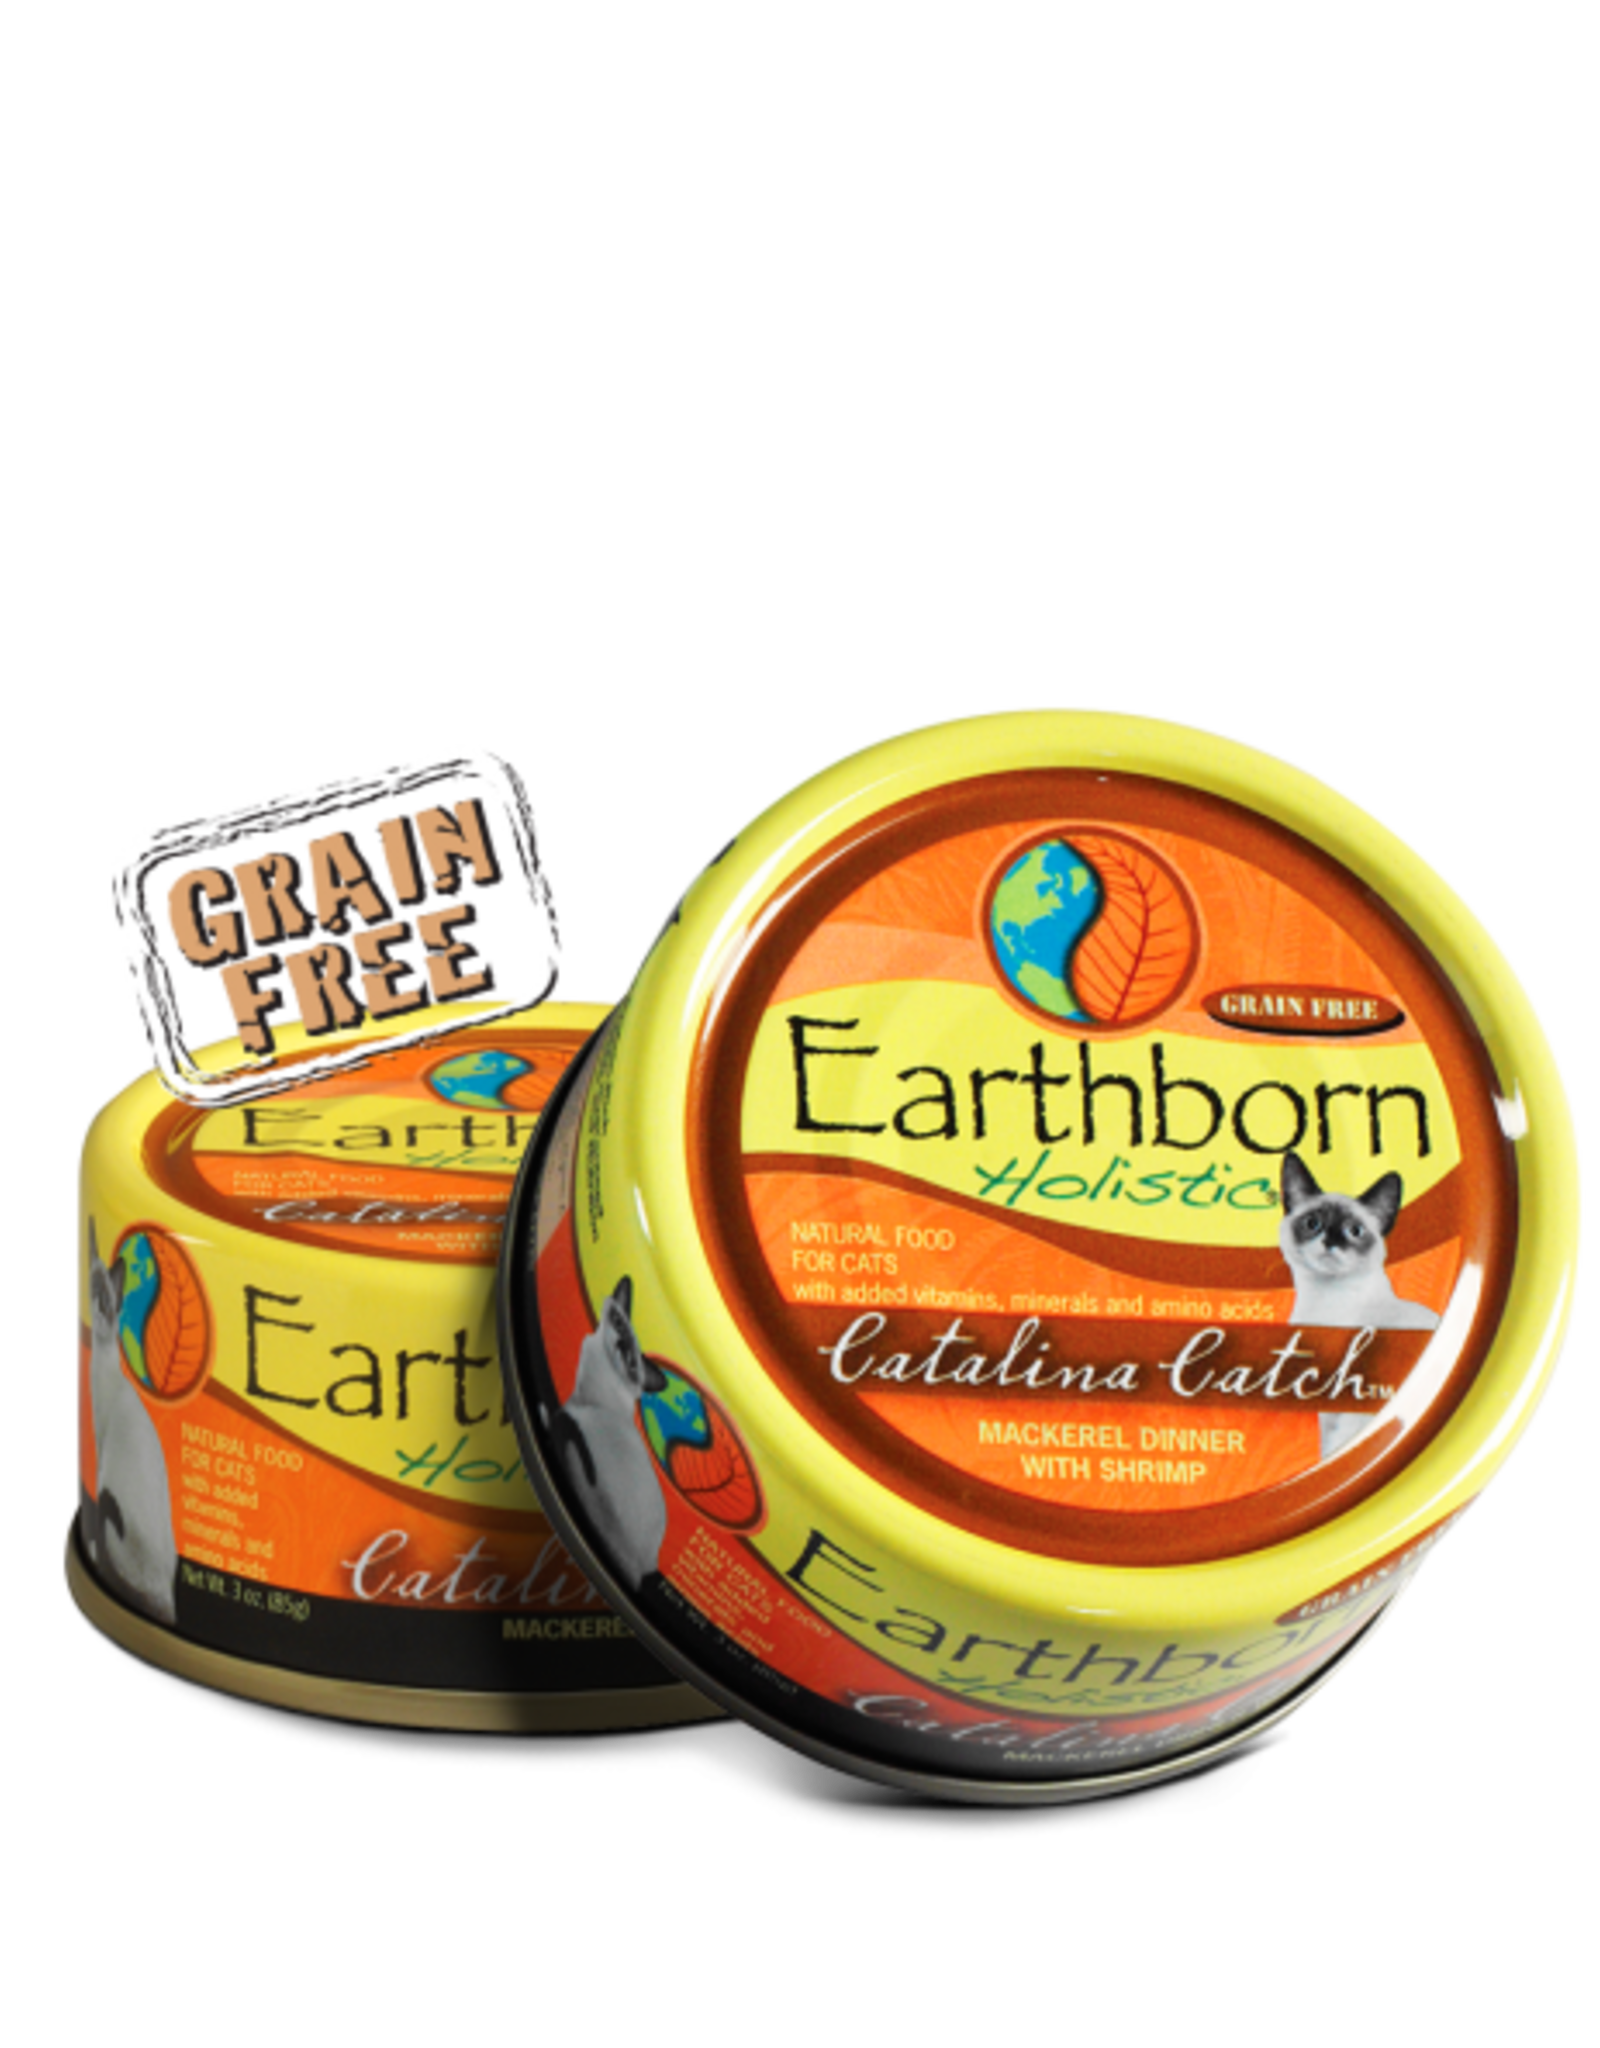 EARTHBORN EARTHBORN HOLISTIC CAT CATALINA CATCH CAN 3OZ CASE OF 24